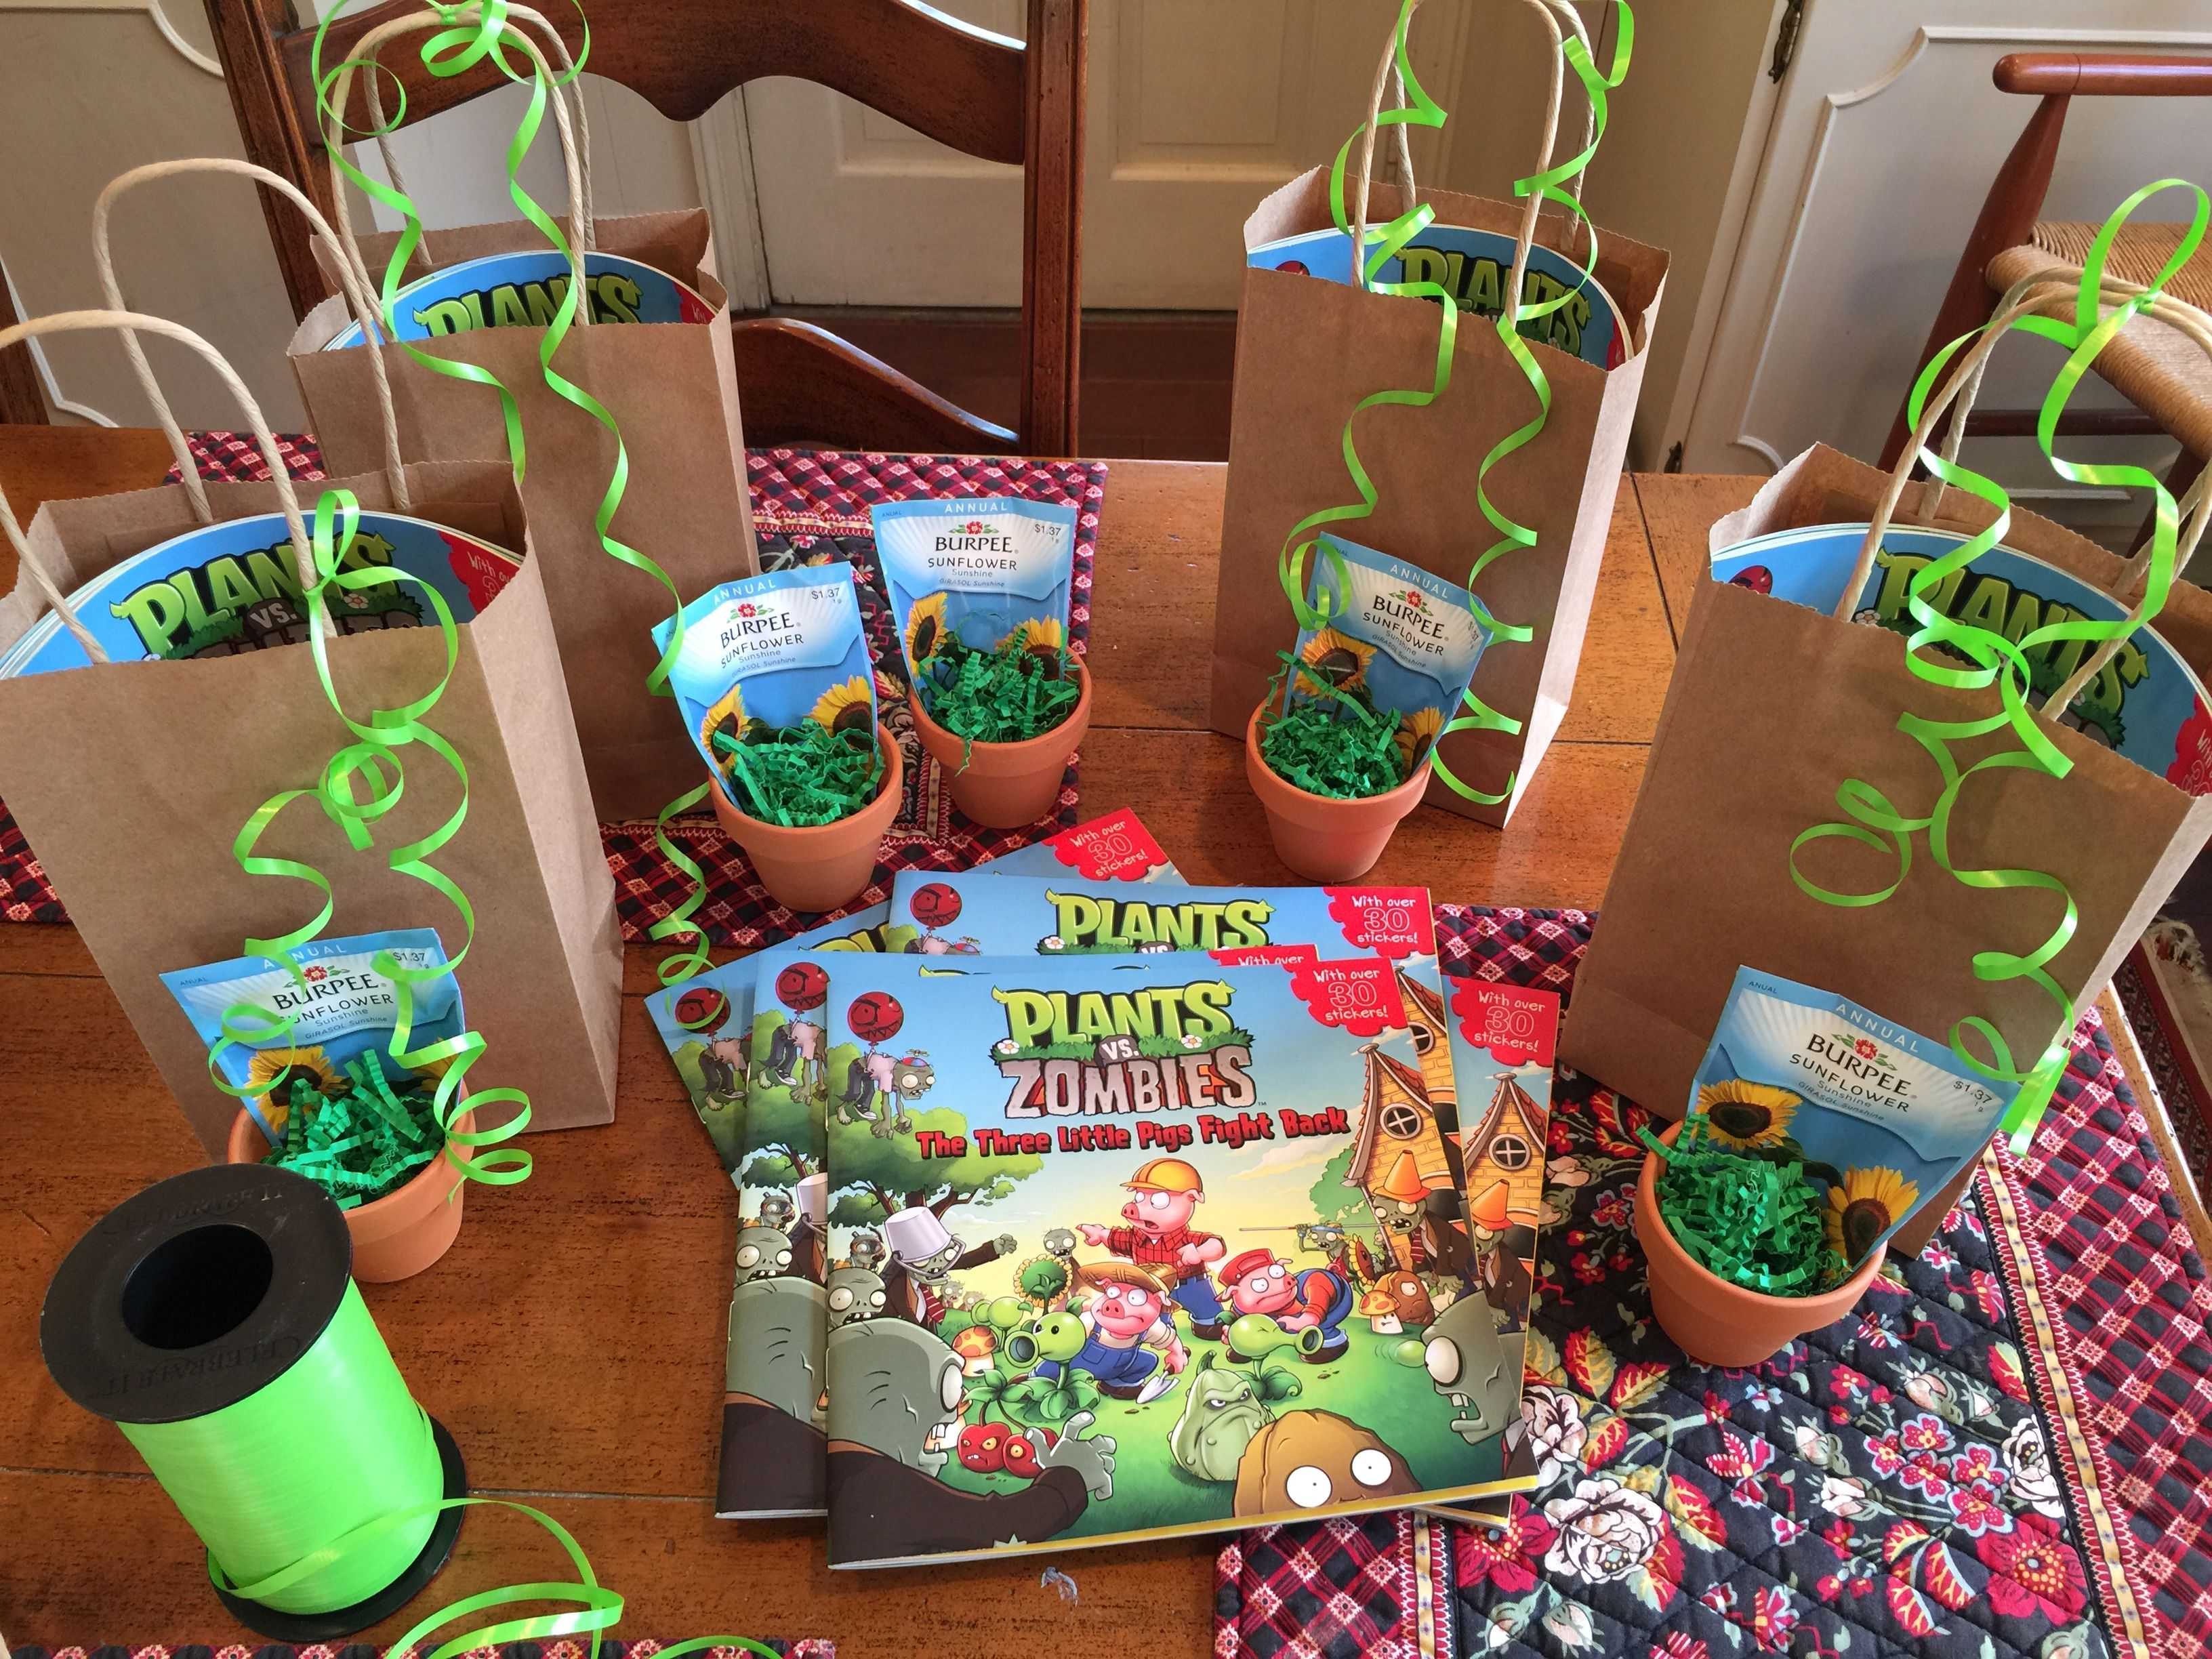 Plants Vs Zombies Party Favors Book Stickers To Decorate Pot Sunflower Seeds Nocandy Zombie Party Plants Vs Zombies Birthday Party Boy Party Favors